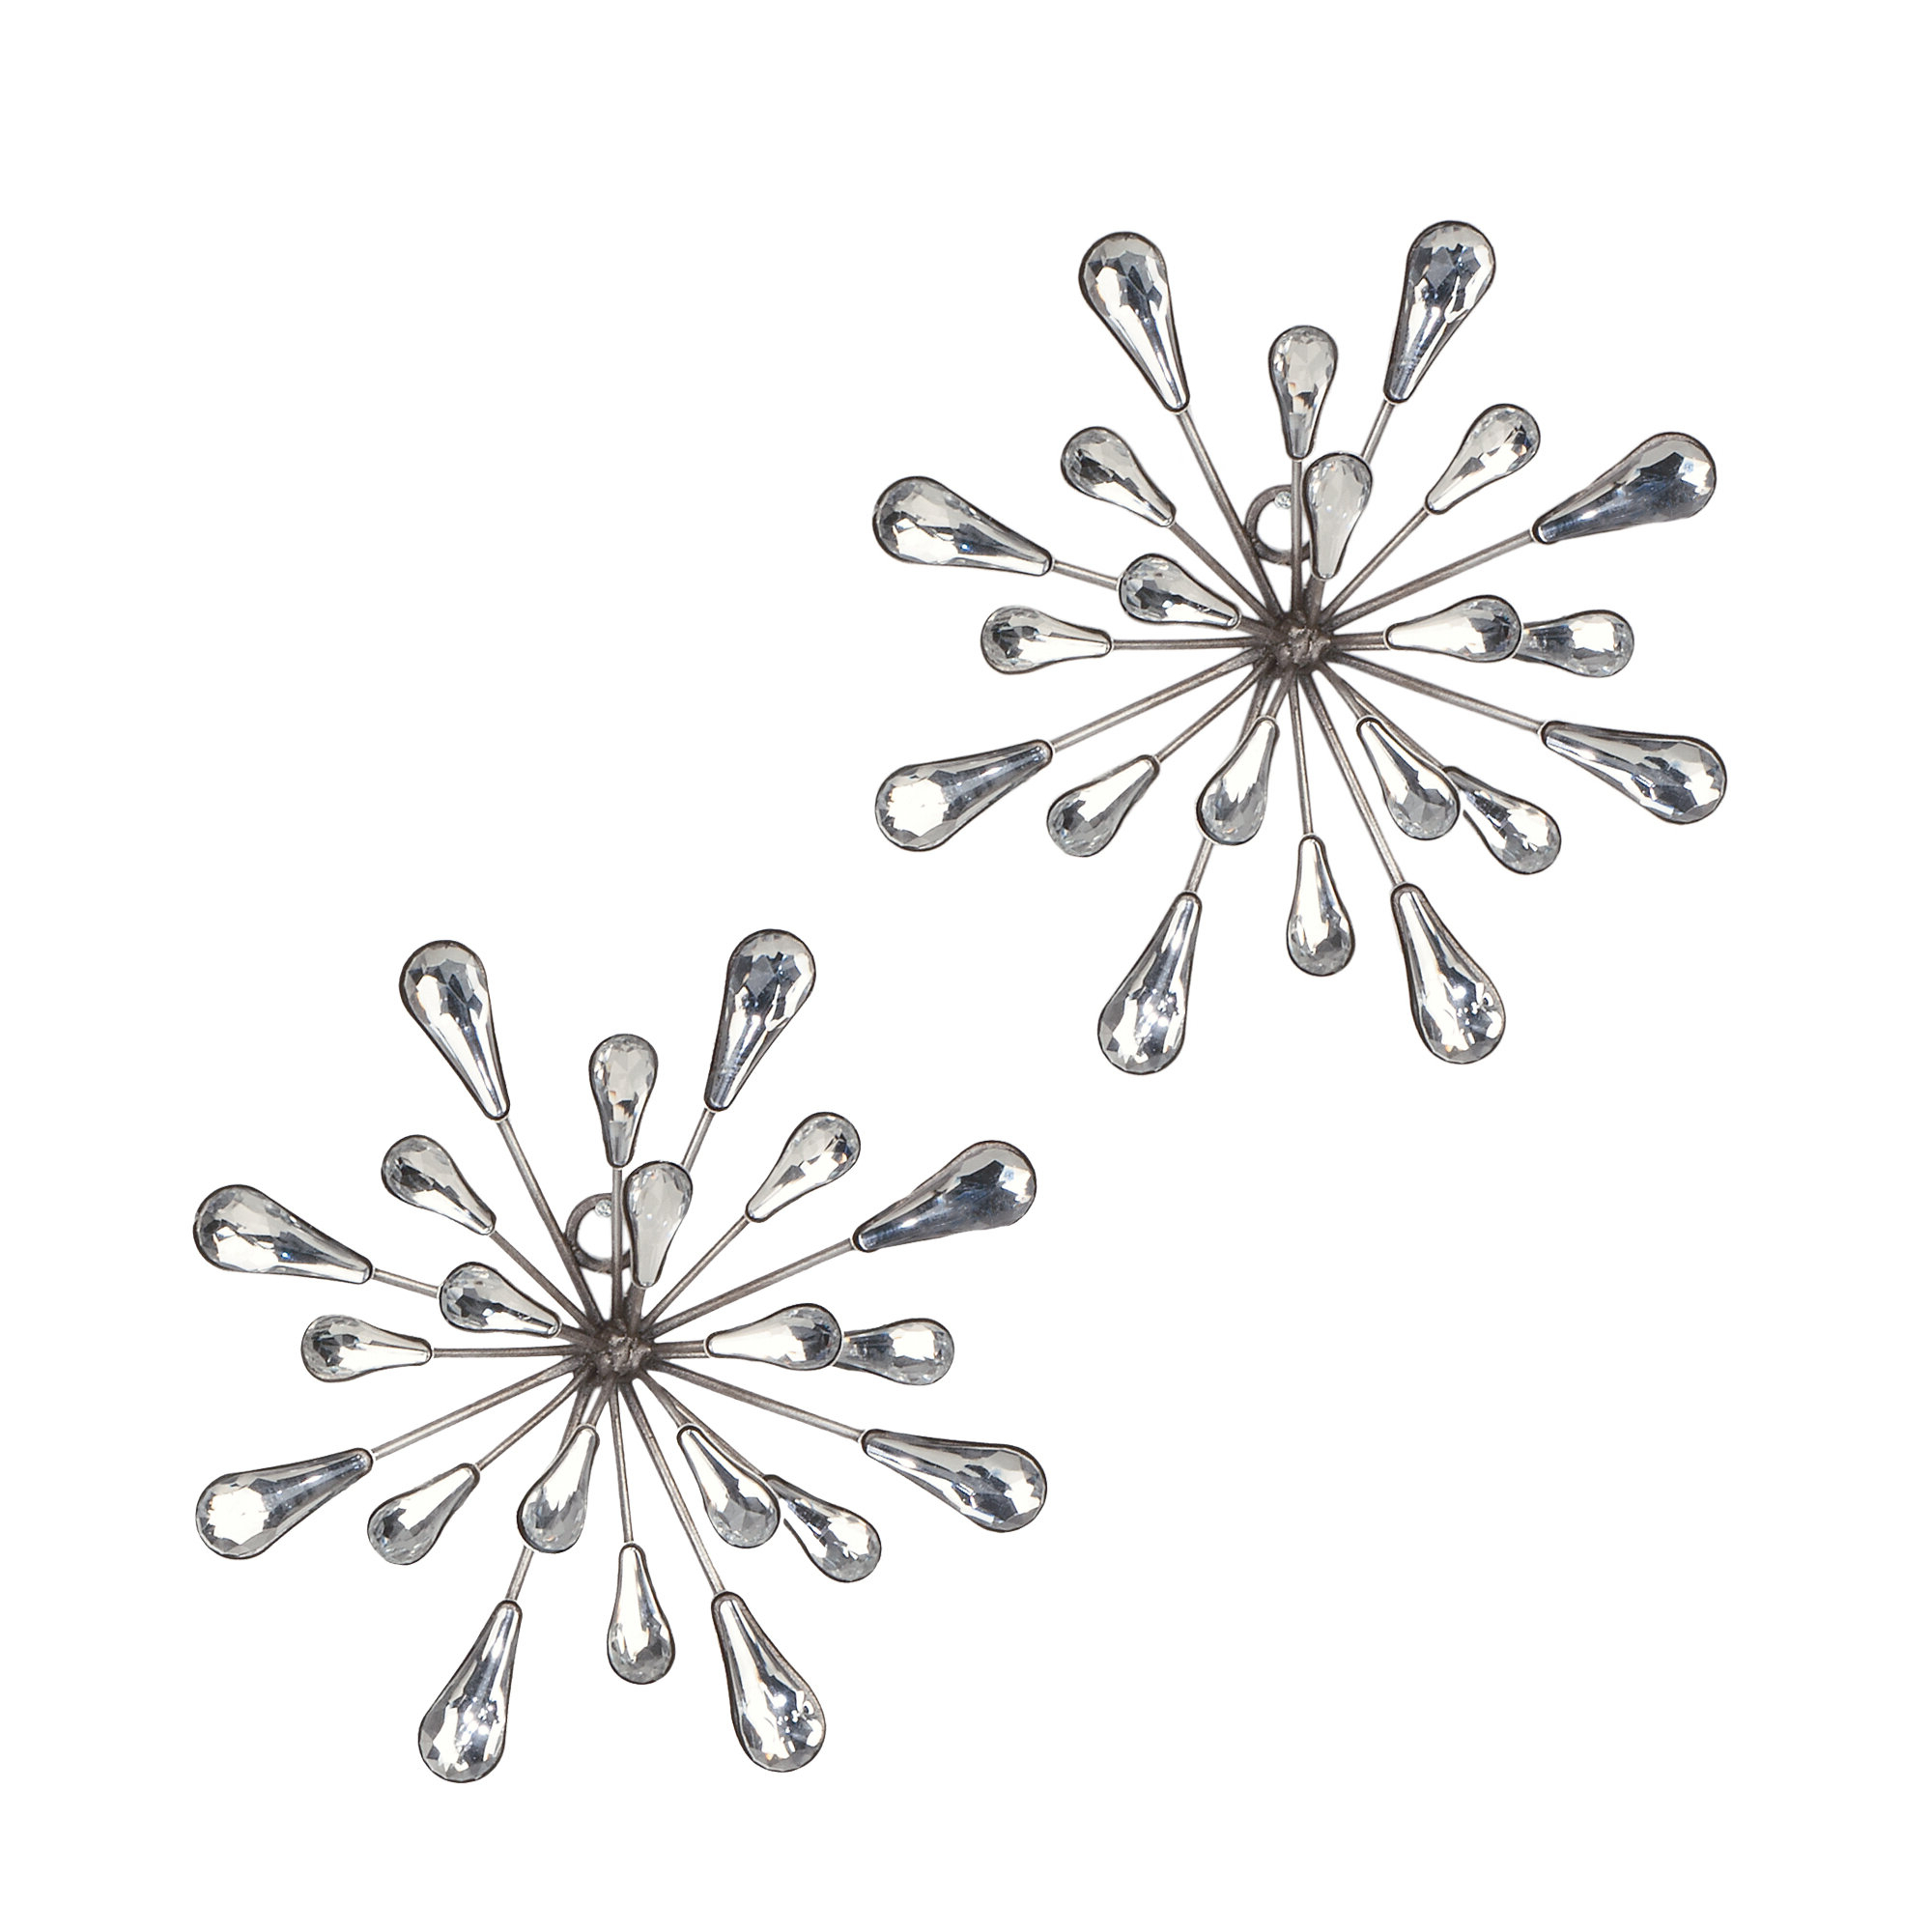 2 Piece Starburst Wall Décor Set & Reviews (View 20 of 20)